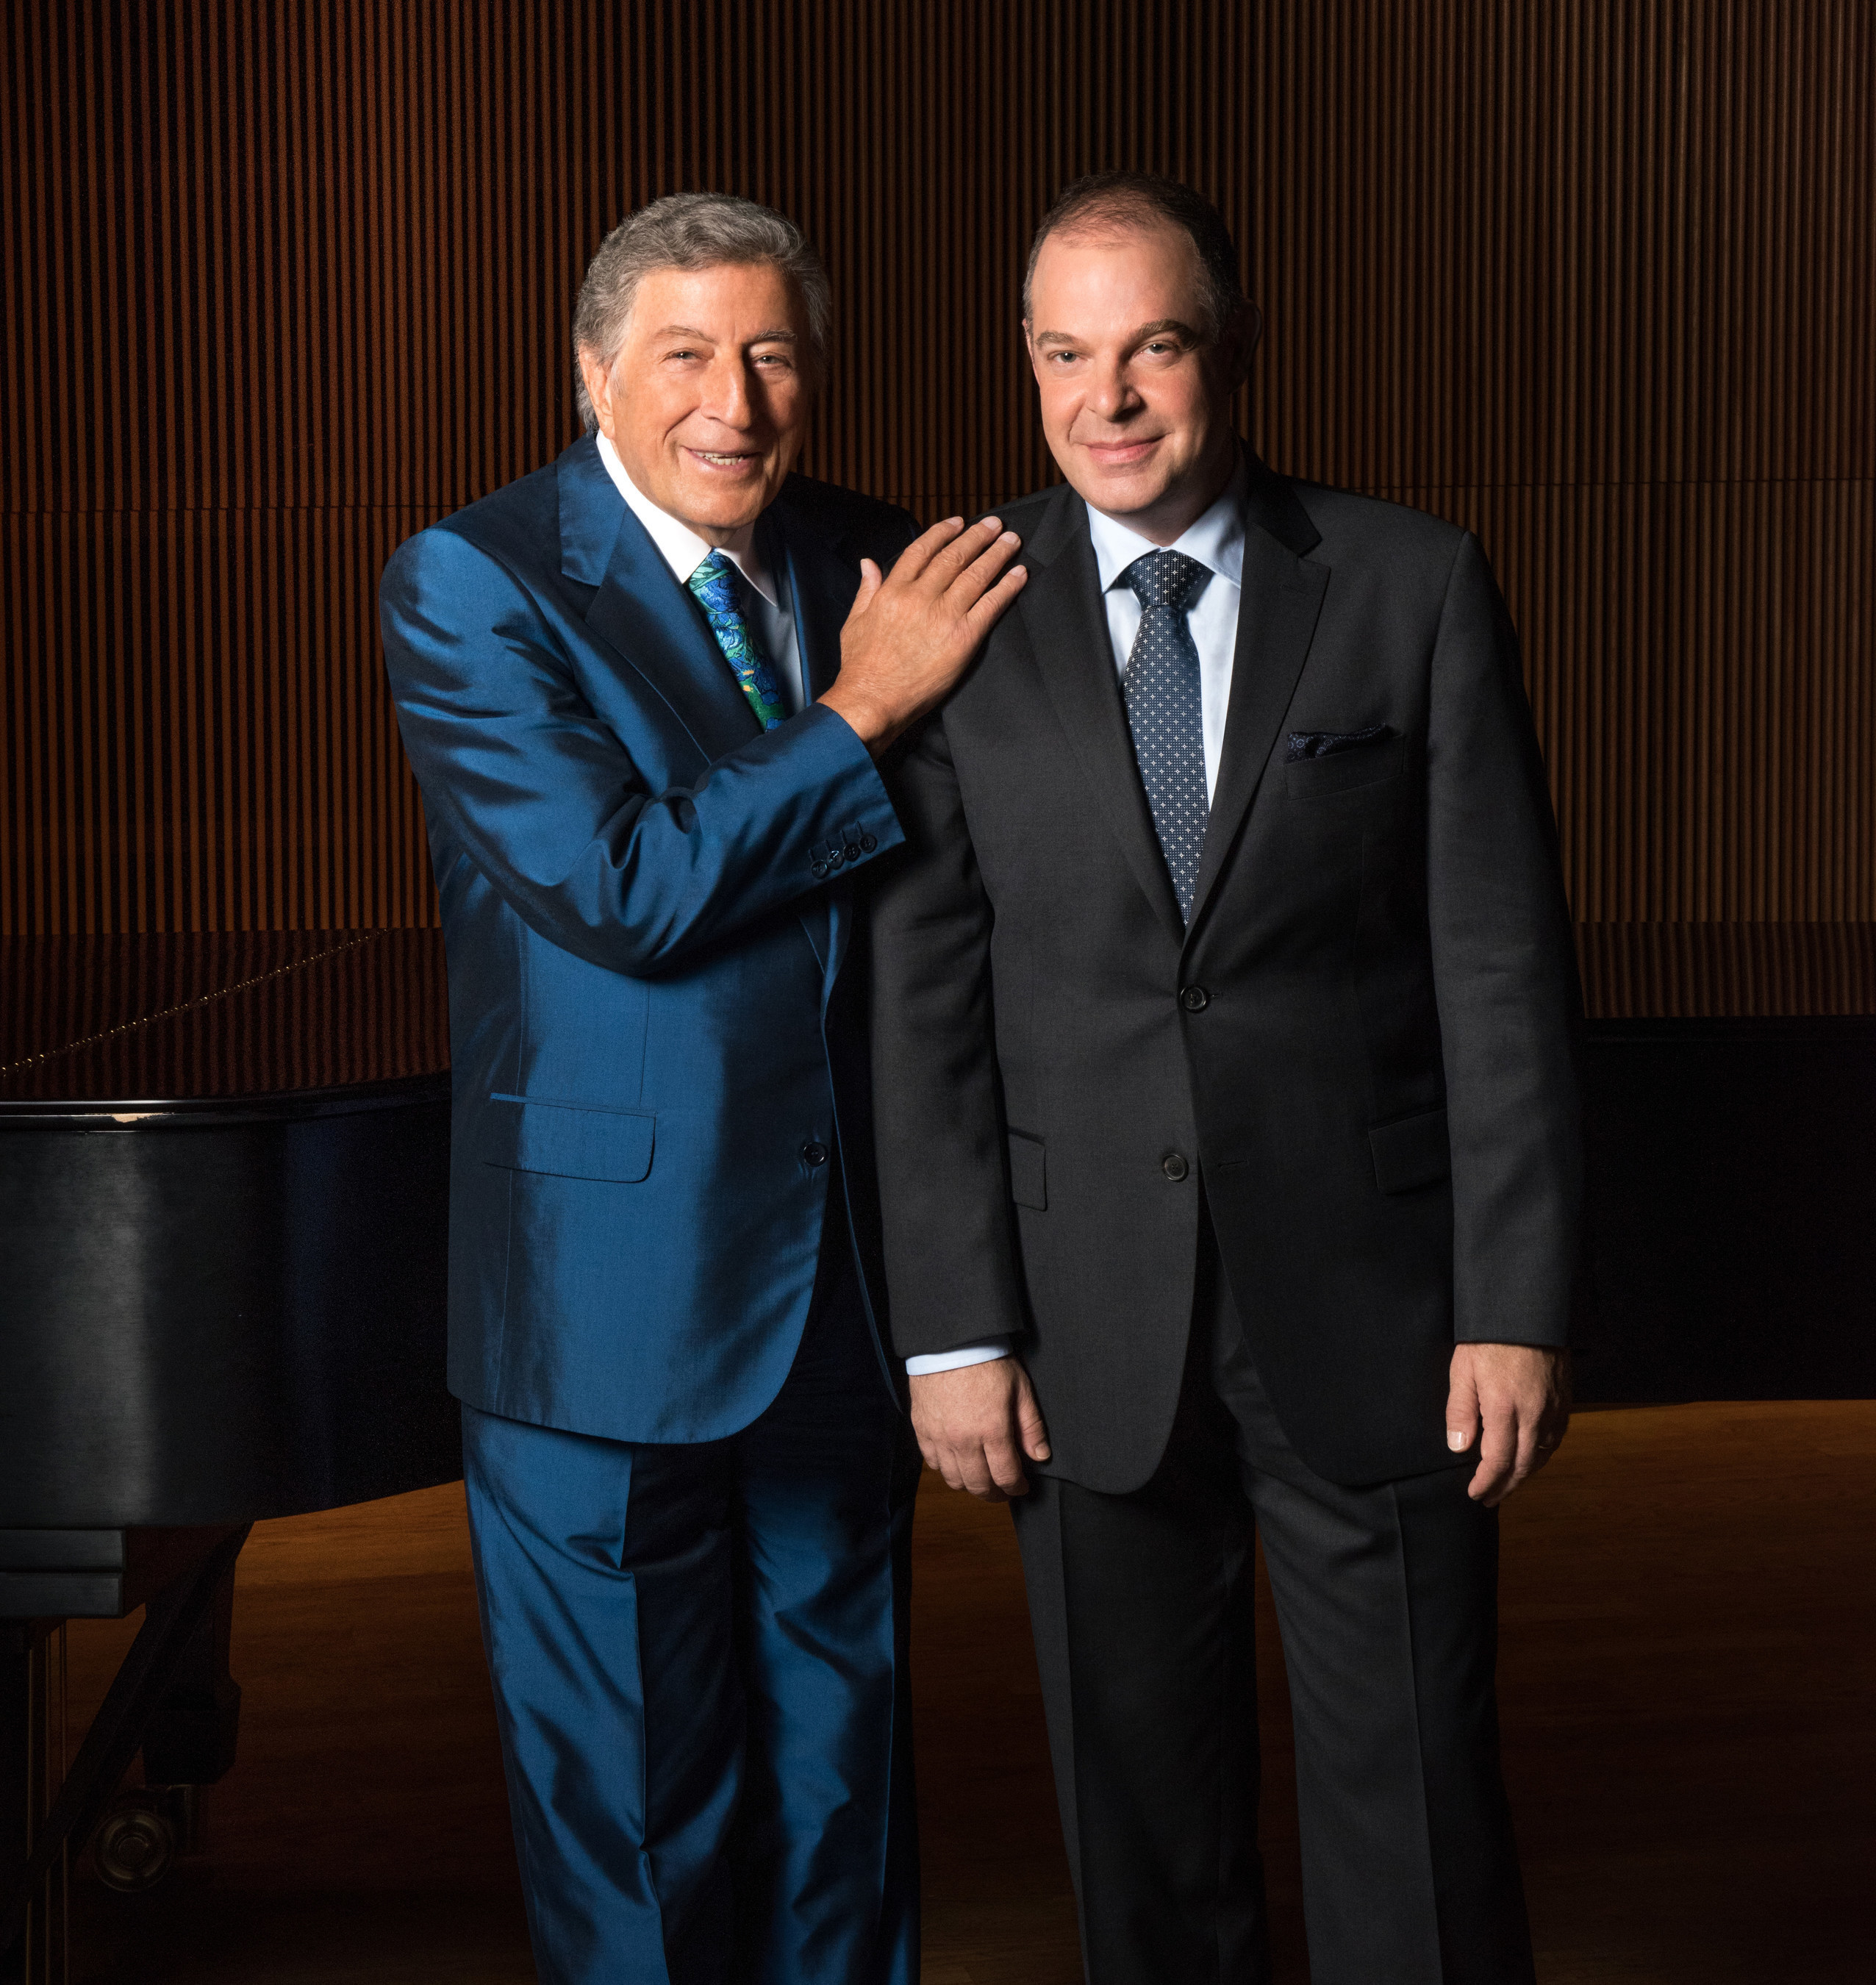 Photo Credit: Kelsey Bennett Music Legend Tony Bennett and Jazz Pianist Bill Charlap Record The Silver Lining: The Songs of Jerome Kern